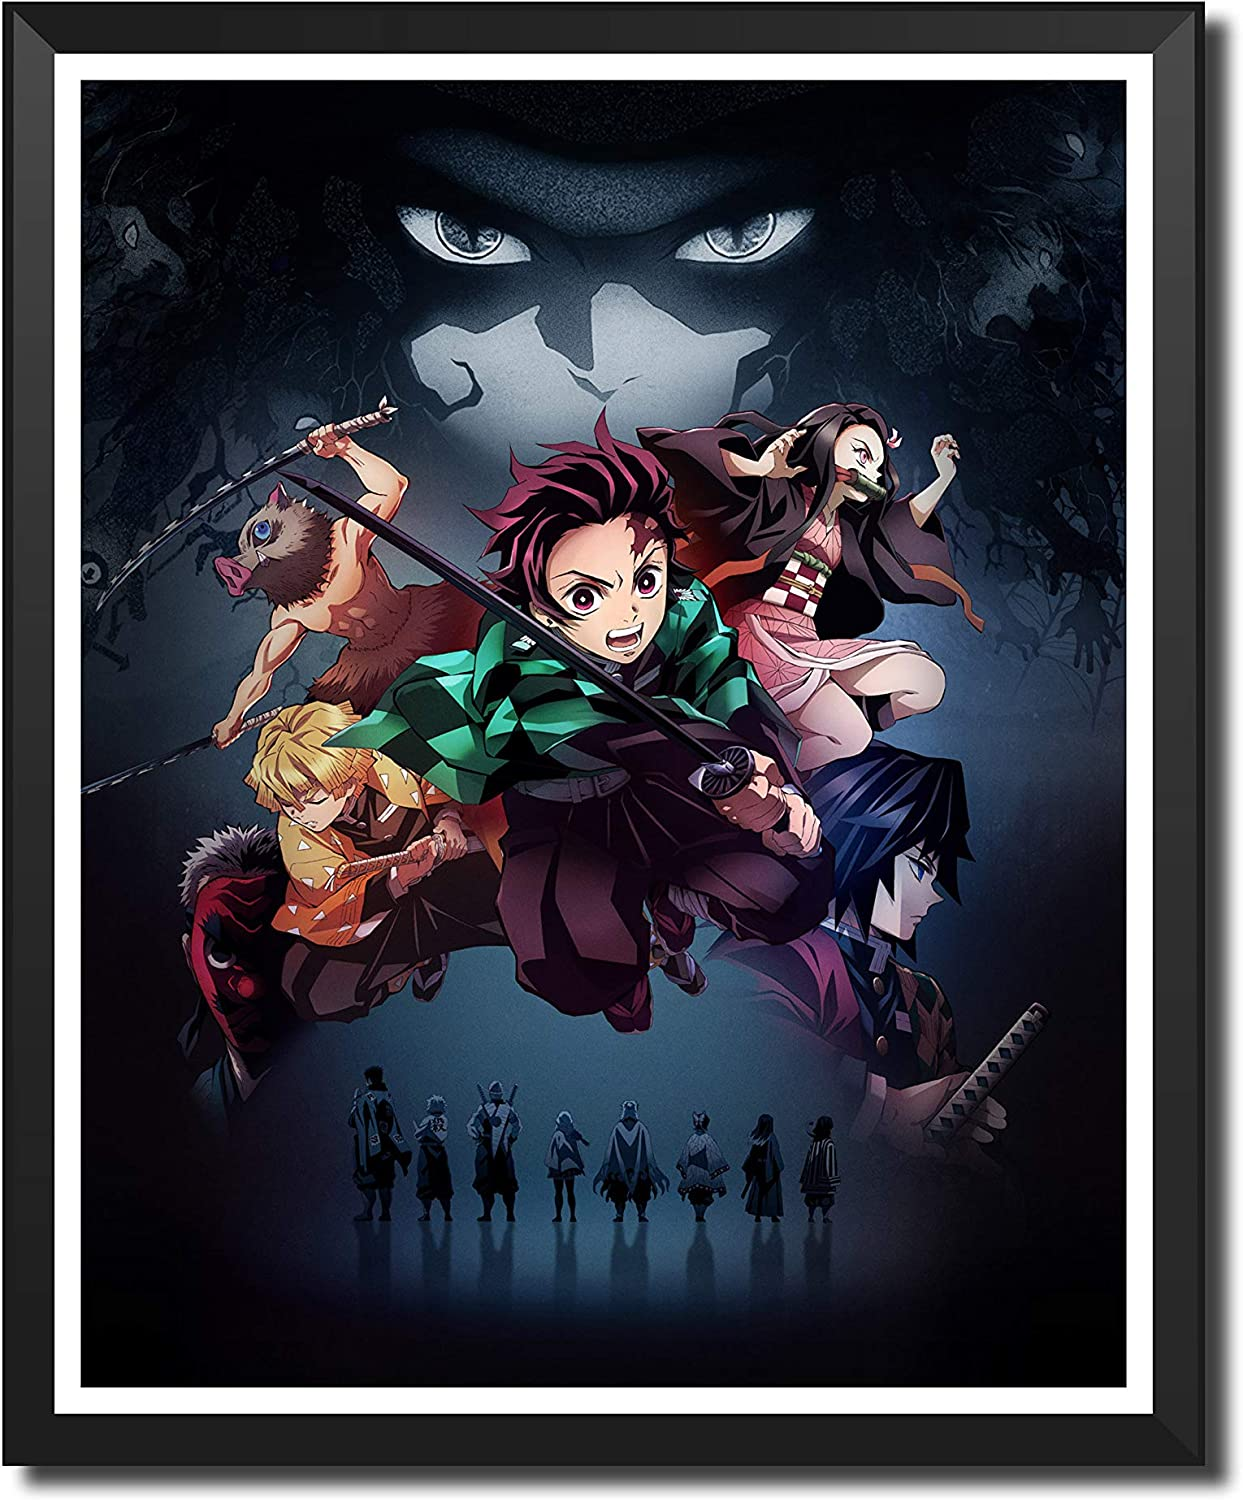 Yansang Anime Demon Slayer Bathroom Decor Wall Decor Home Decor Canvas Print Poster,Unframed,8 x 10 Inches,Set of 1 Piece(Small Size)